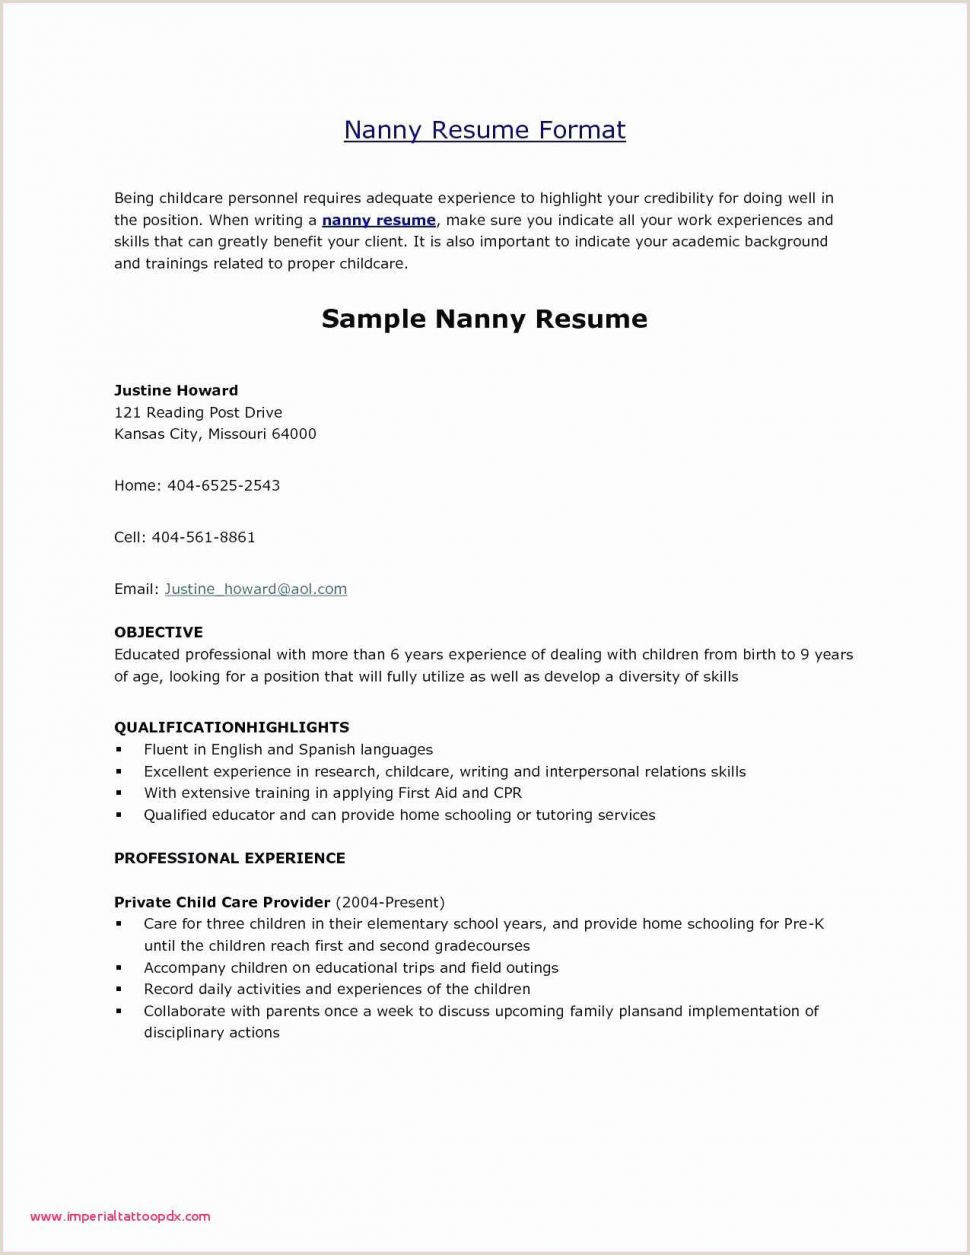 Resume format for Applying A Job Hairstyles Academic Resume Template Fab Work Resume